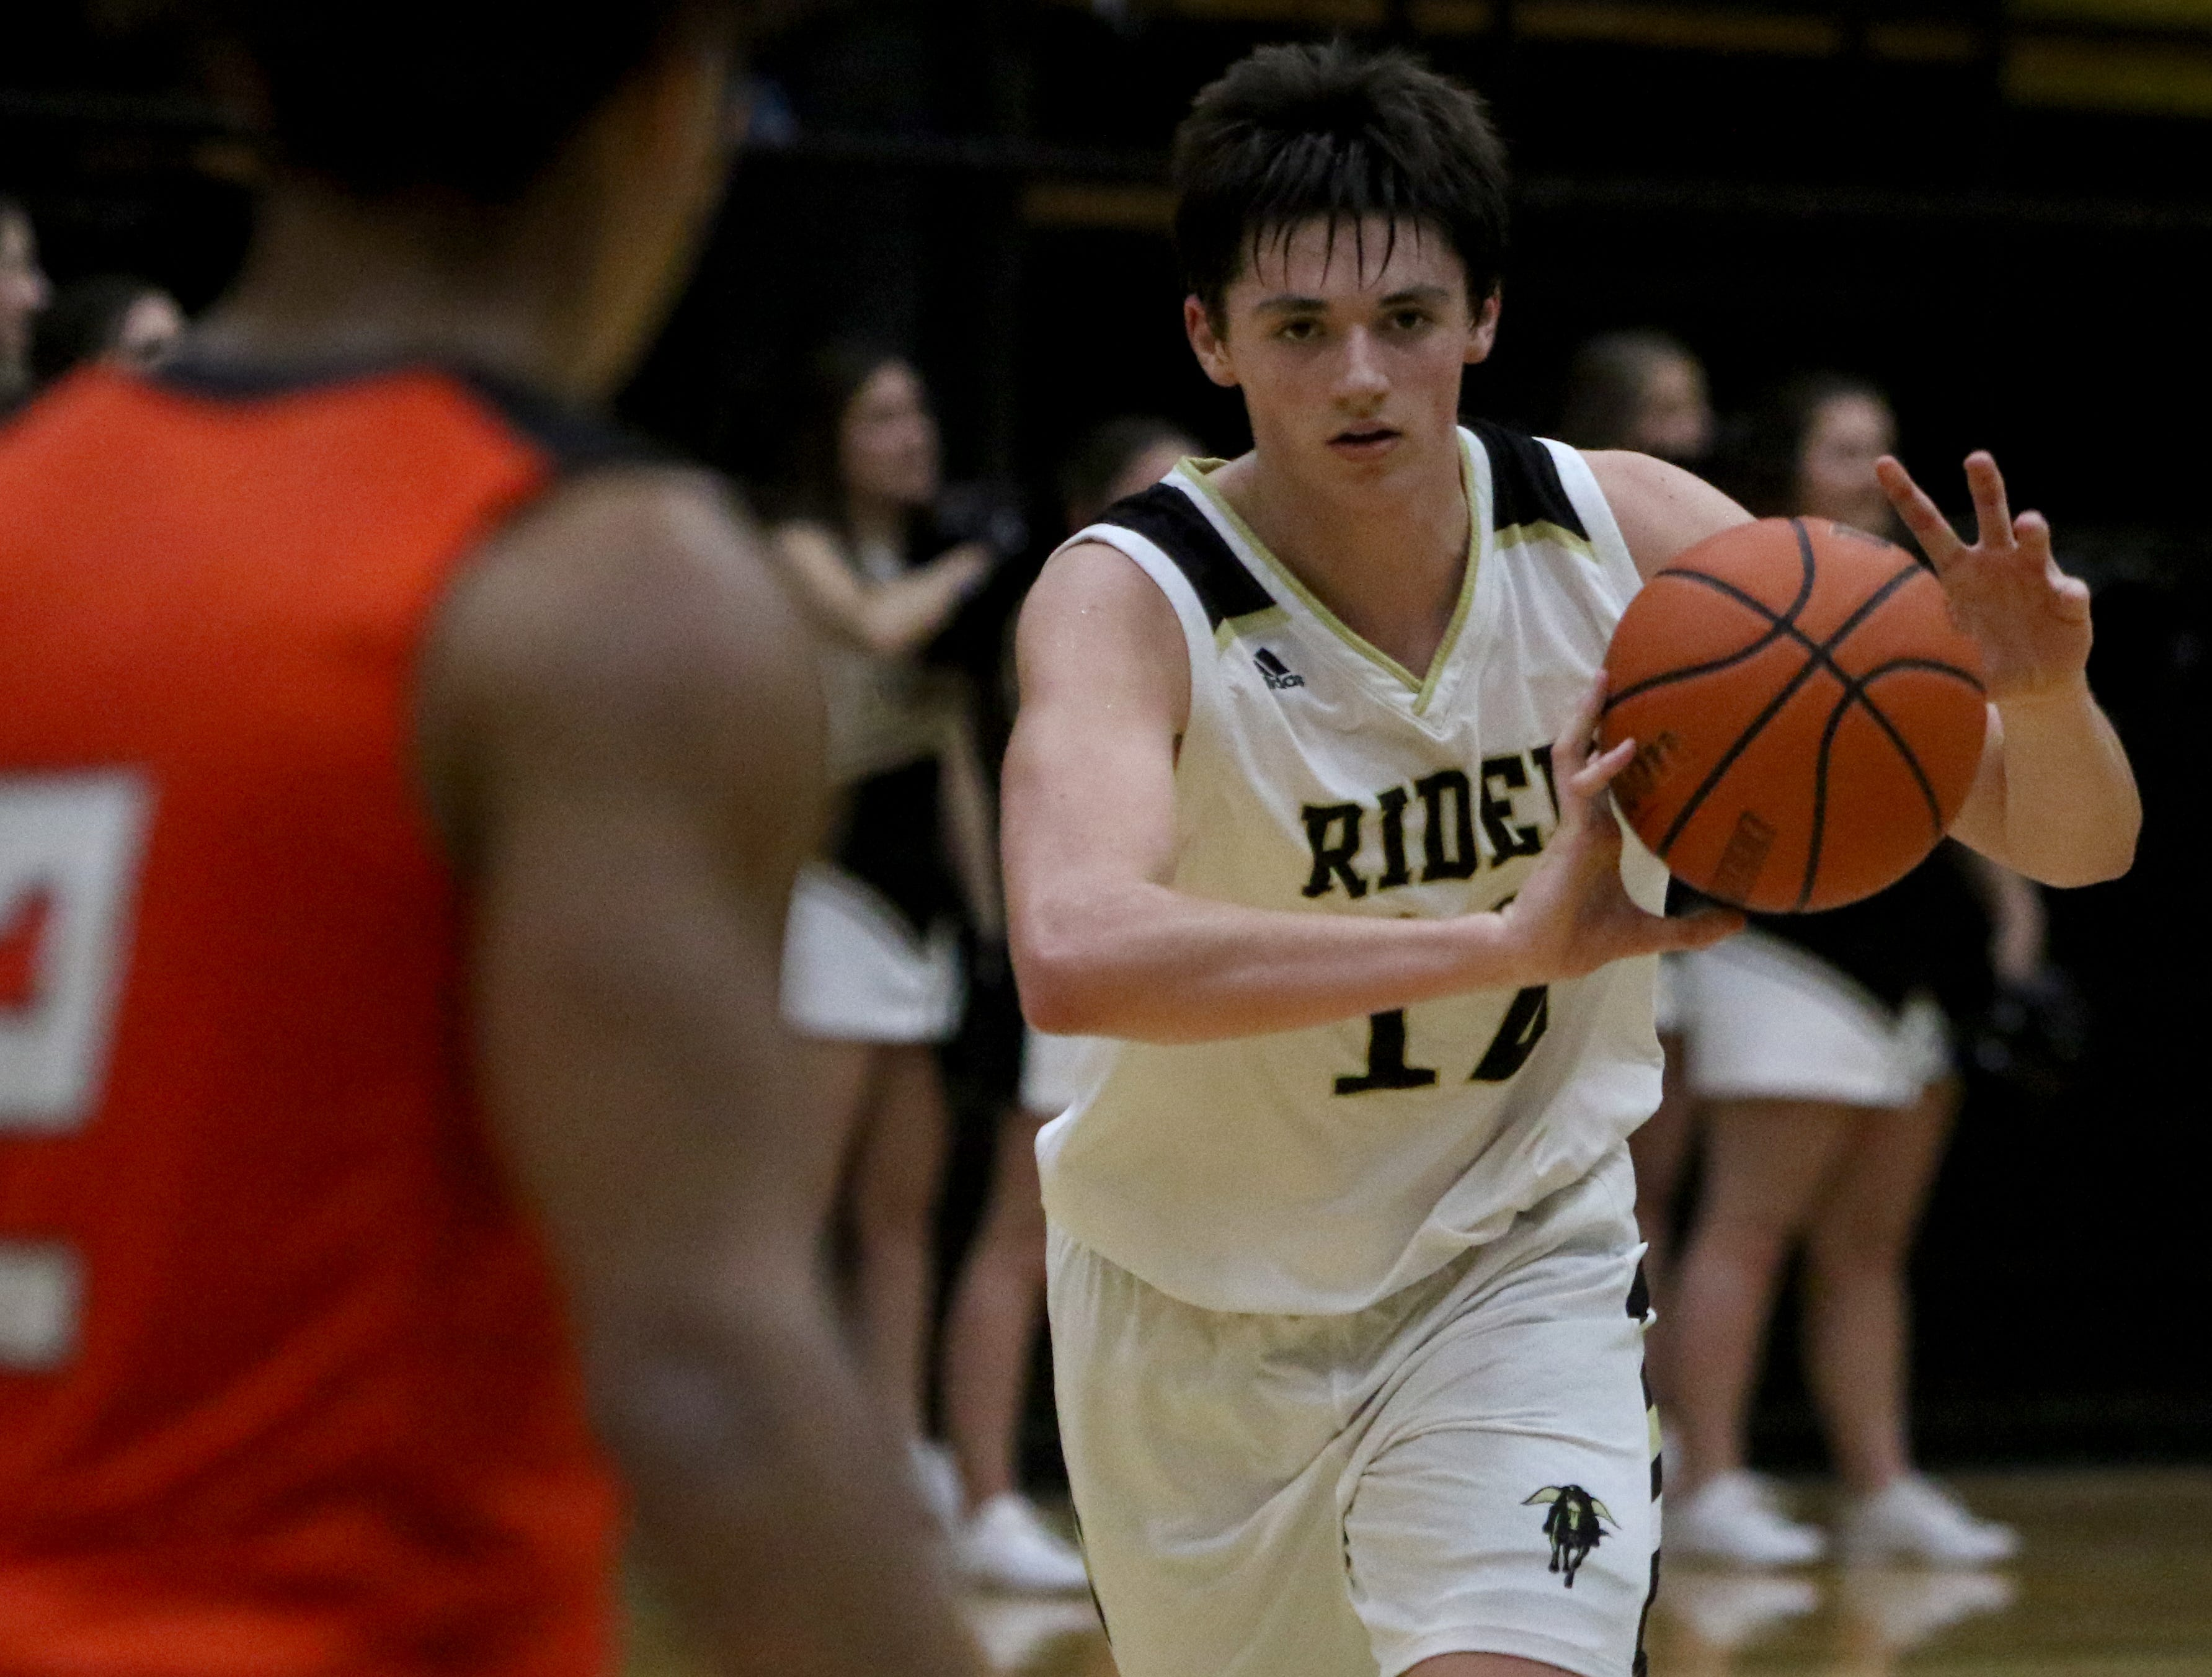 Rider's Ty Caswell passes in the game against Aledo Tuesday, Feb. 5, 2019, at Rider. The Raiders defeated the Bearcats 64-51.